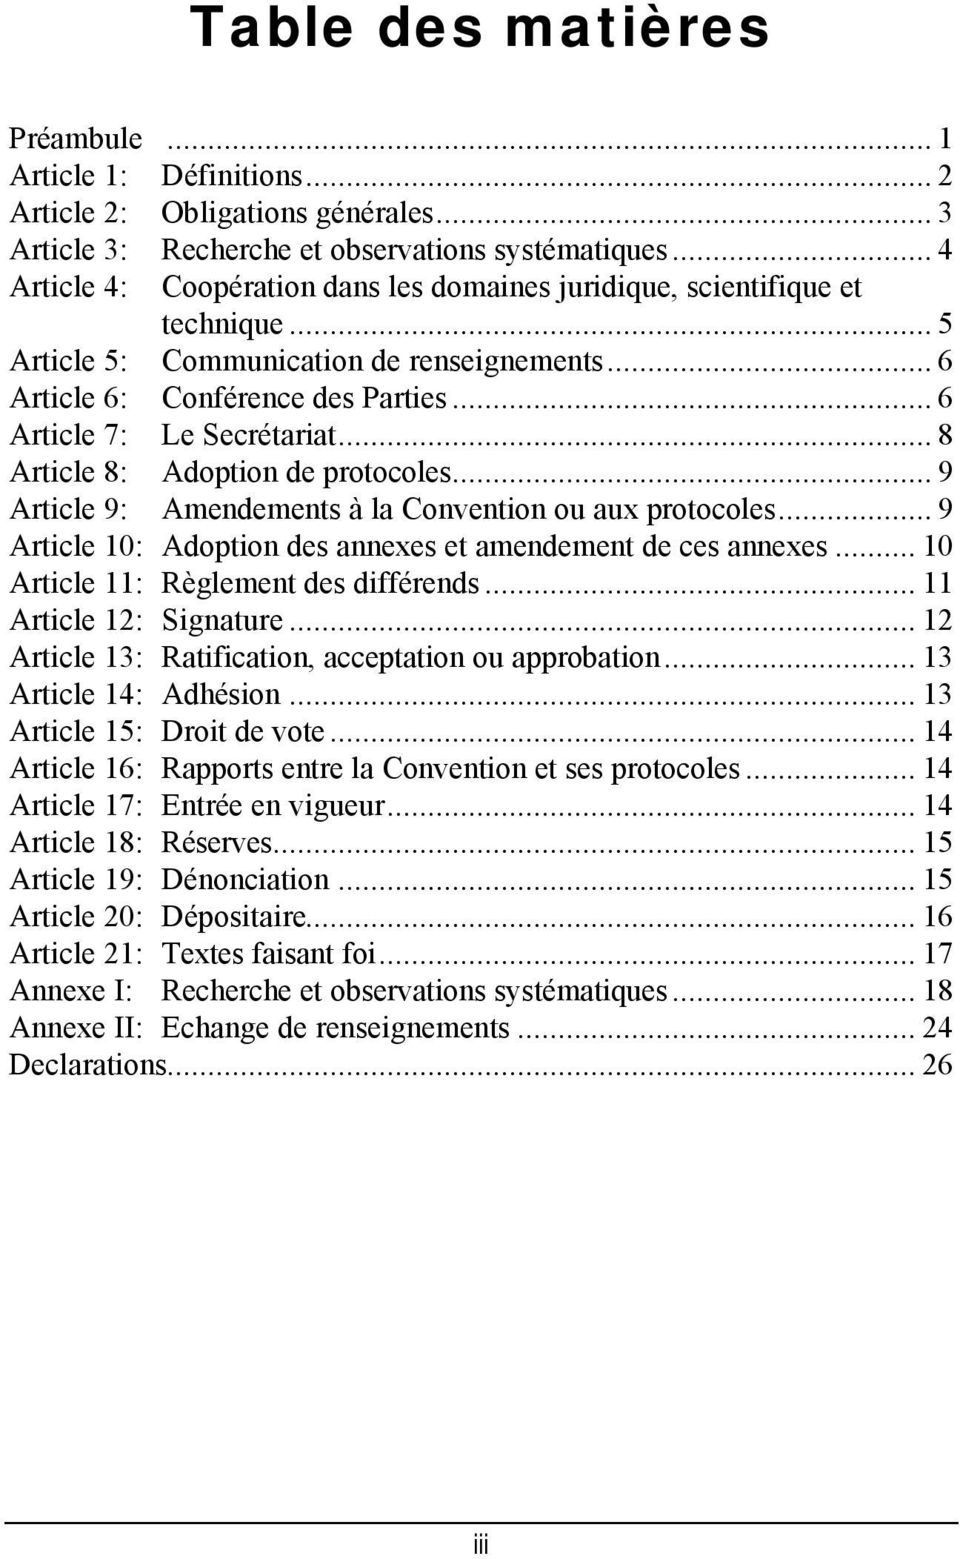 .. 8 Article 8: Adoption de protocoles... 9 Article 9: Amendements à la Convention ou aux protocoles... 9 Article 10: Adoption des annexes et amendement de ces annexes.